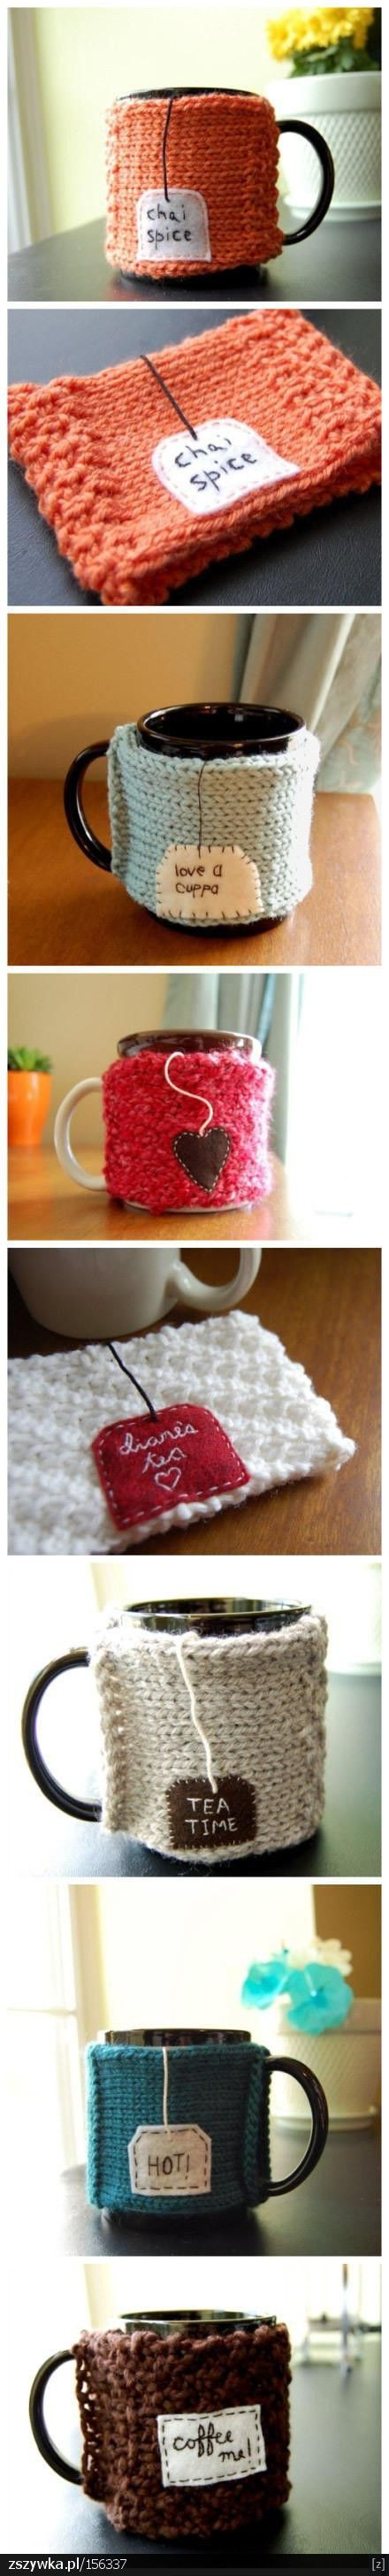 Very cute cup warmers!